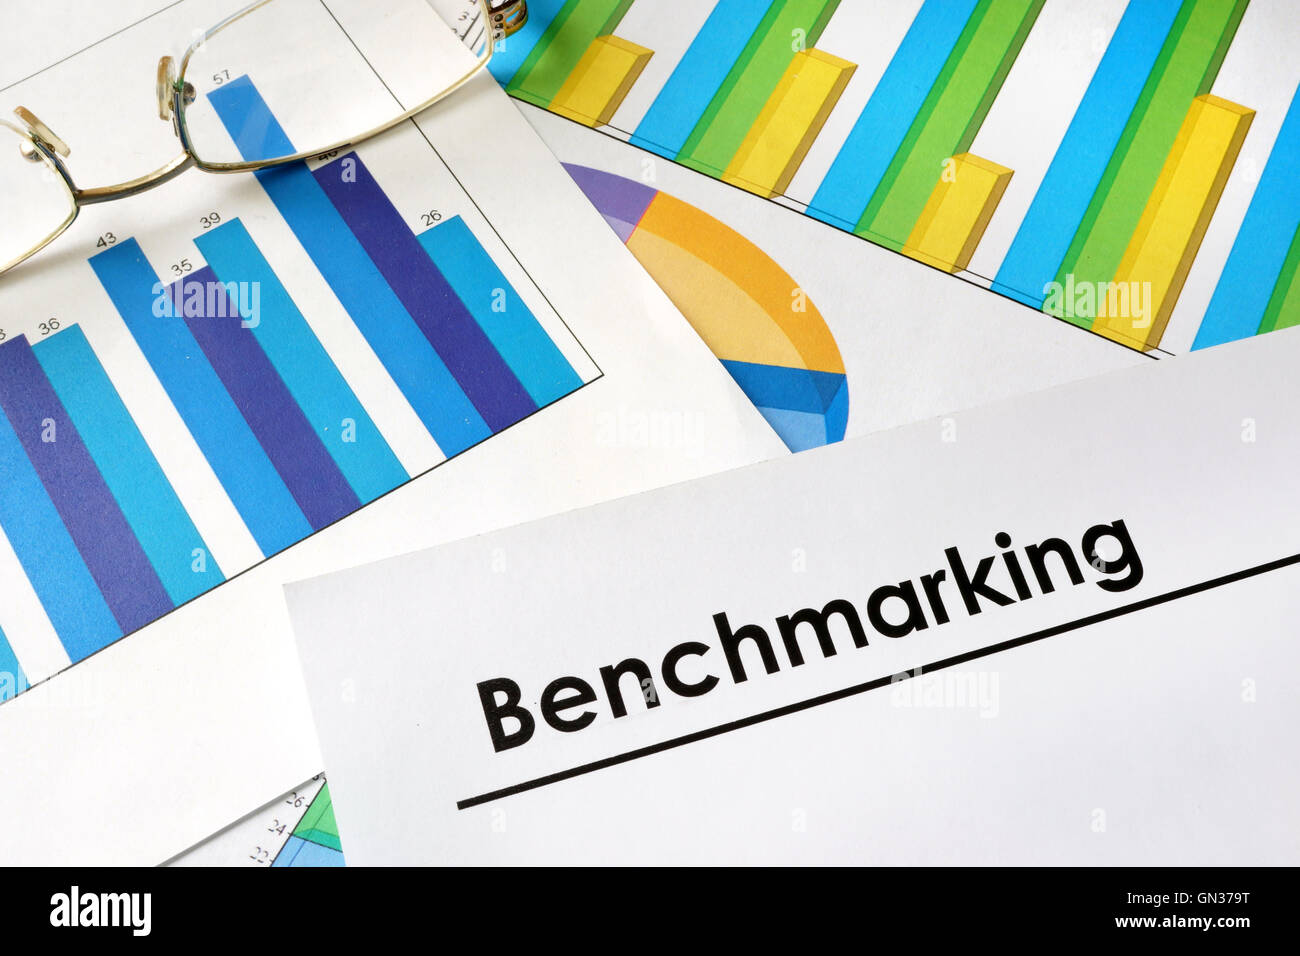 Paper with words Benchmarking and charts. - Stock Image